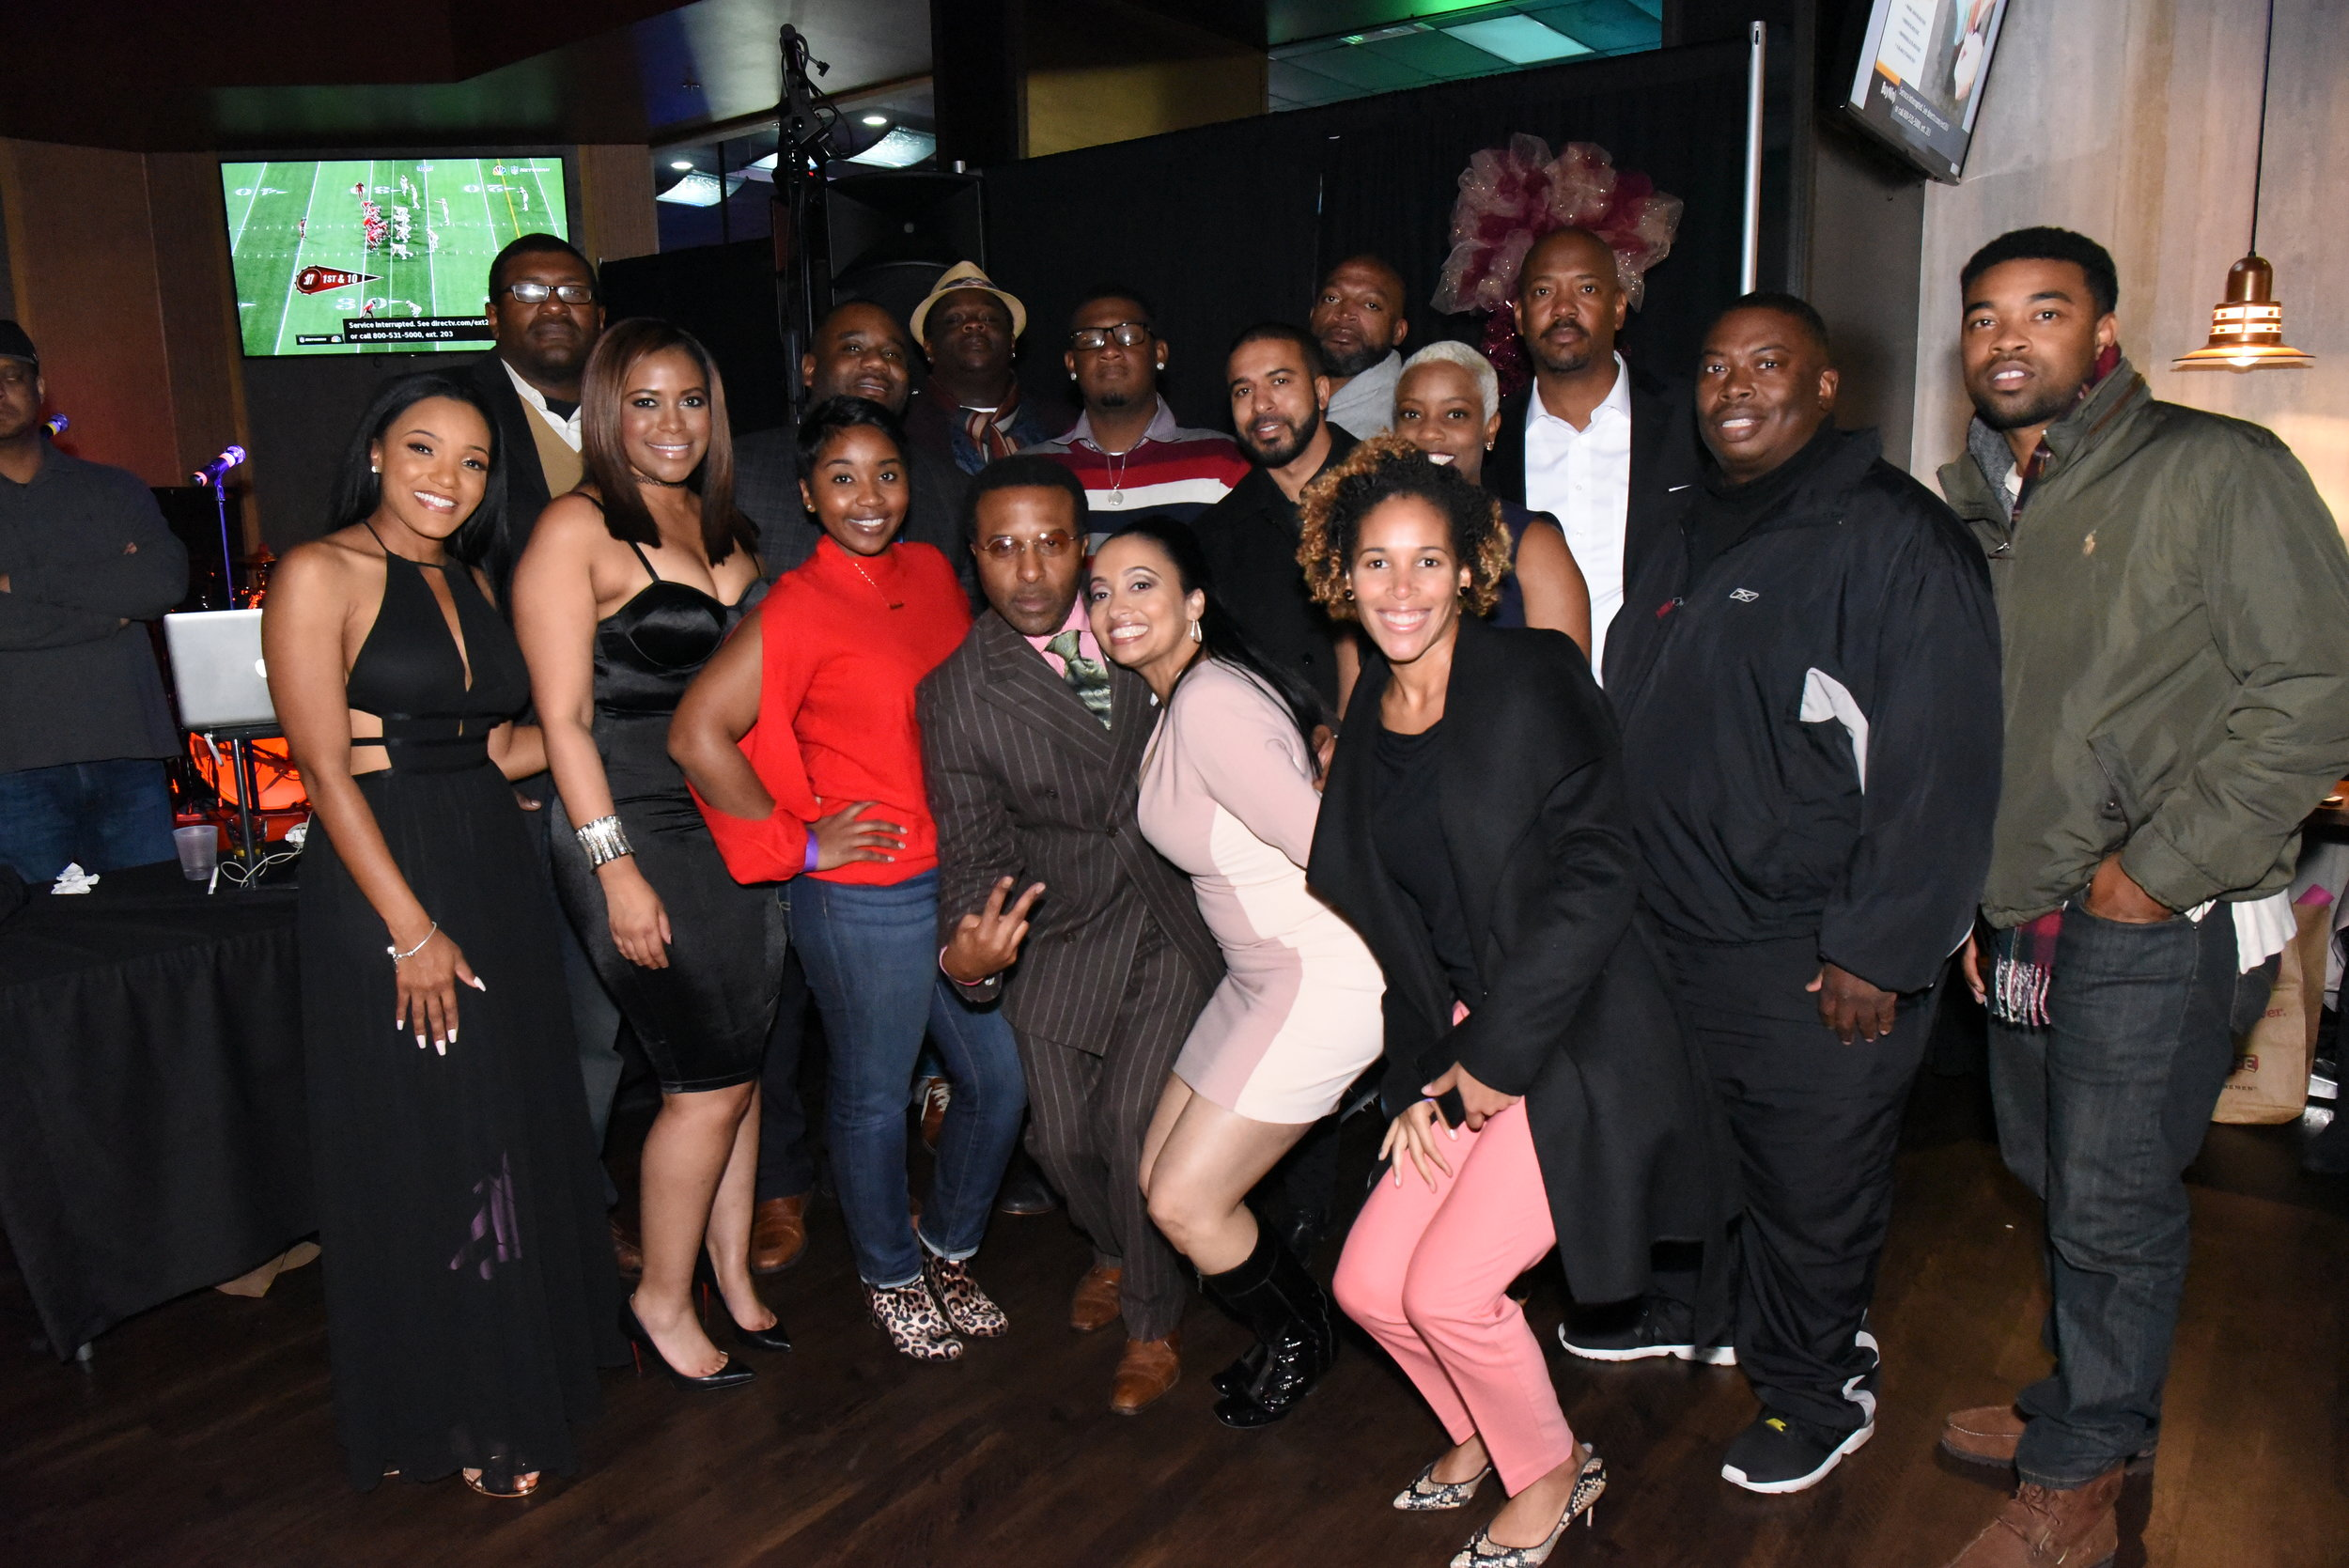 MIX, MINGLE & JINGLE:  NETWORKING FOR A CAUSE